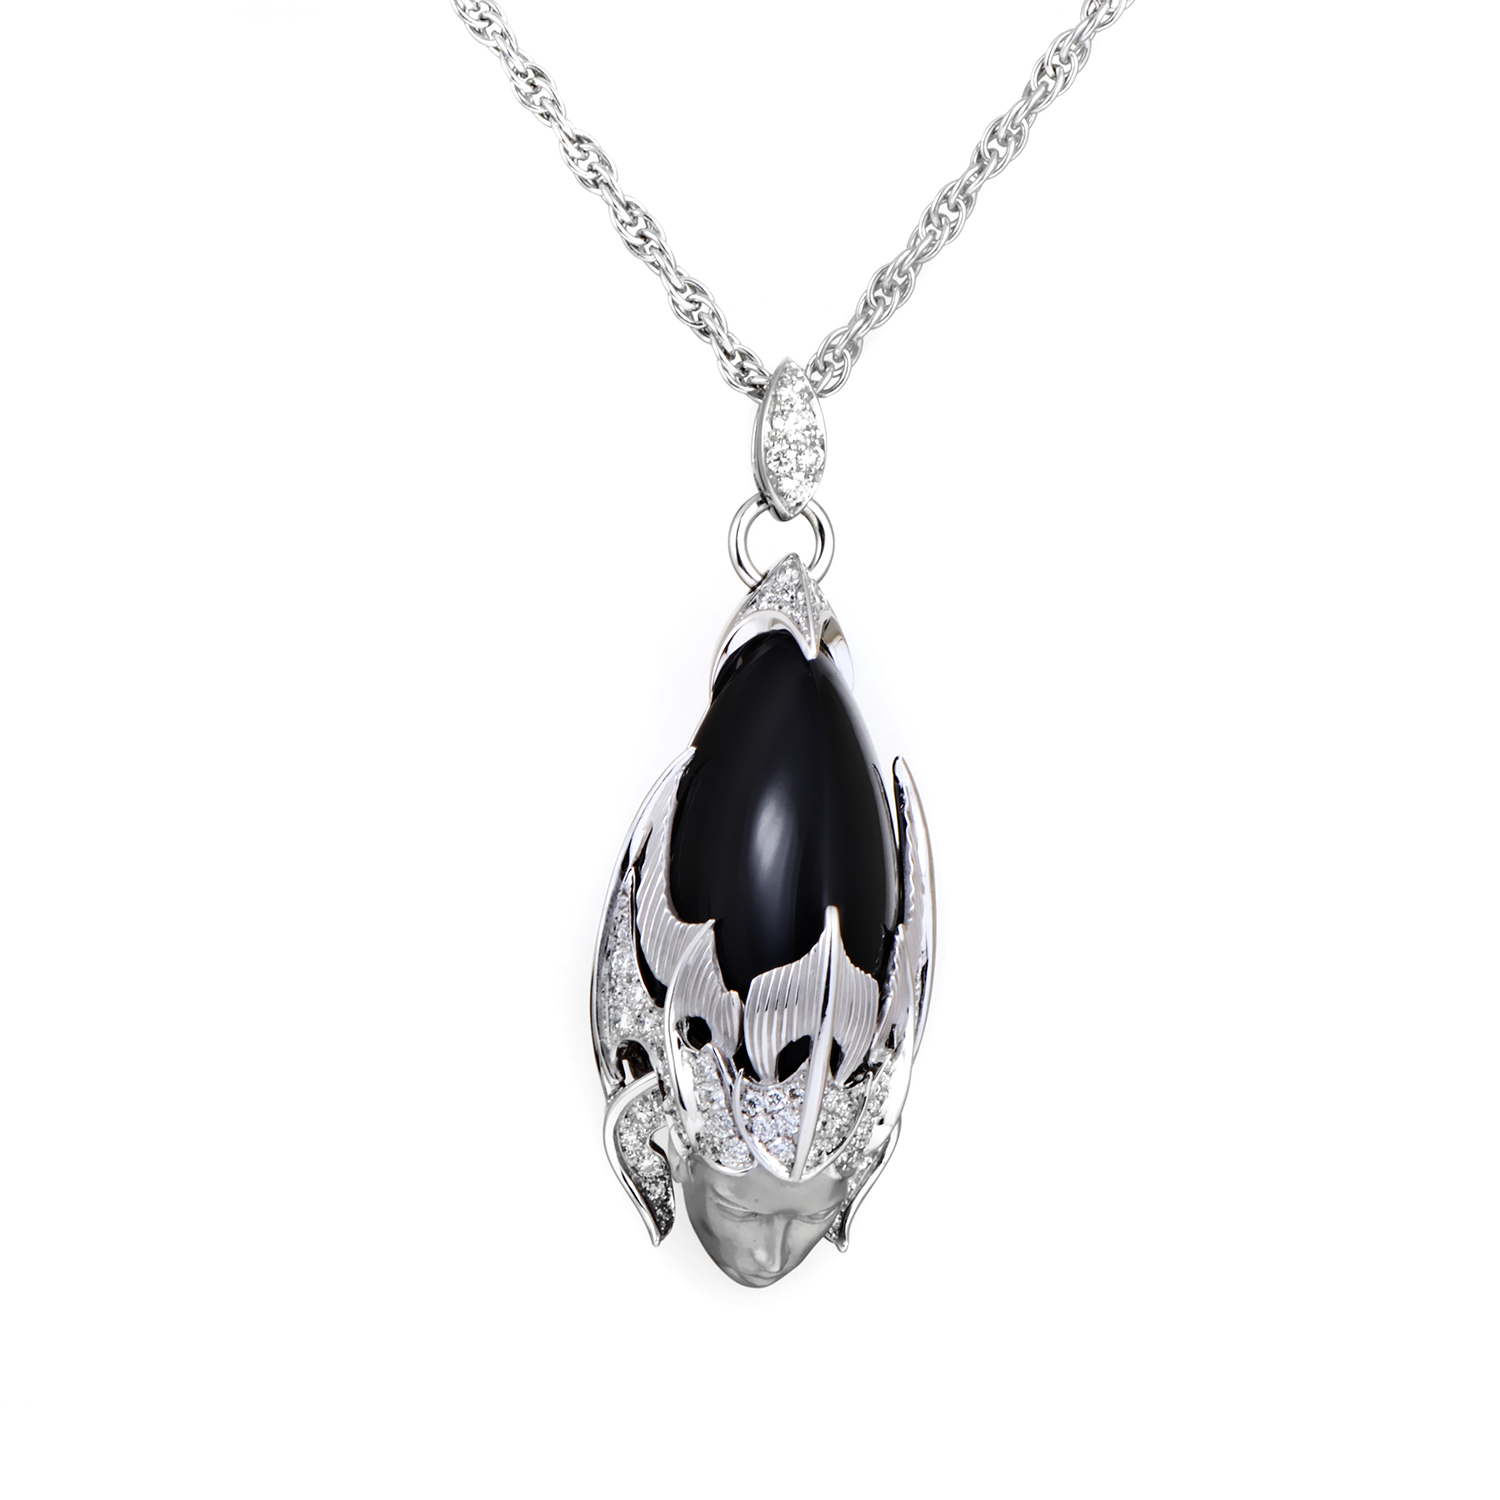 Atlantis Sirena Espuma 18K White Gold Diamond & Onyx Pendant Necklace